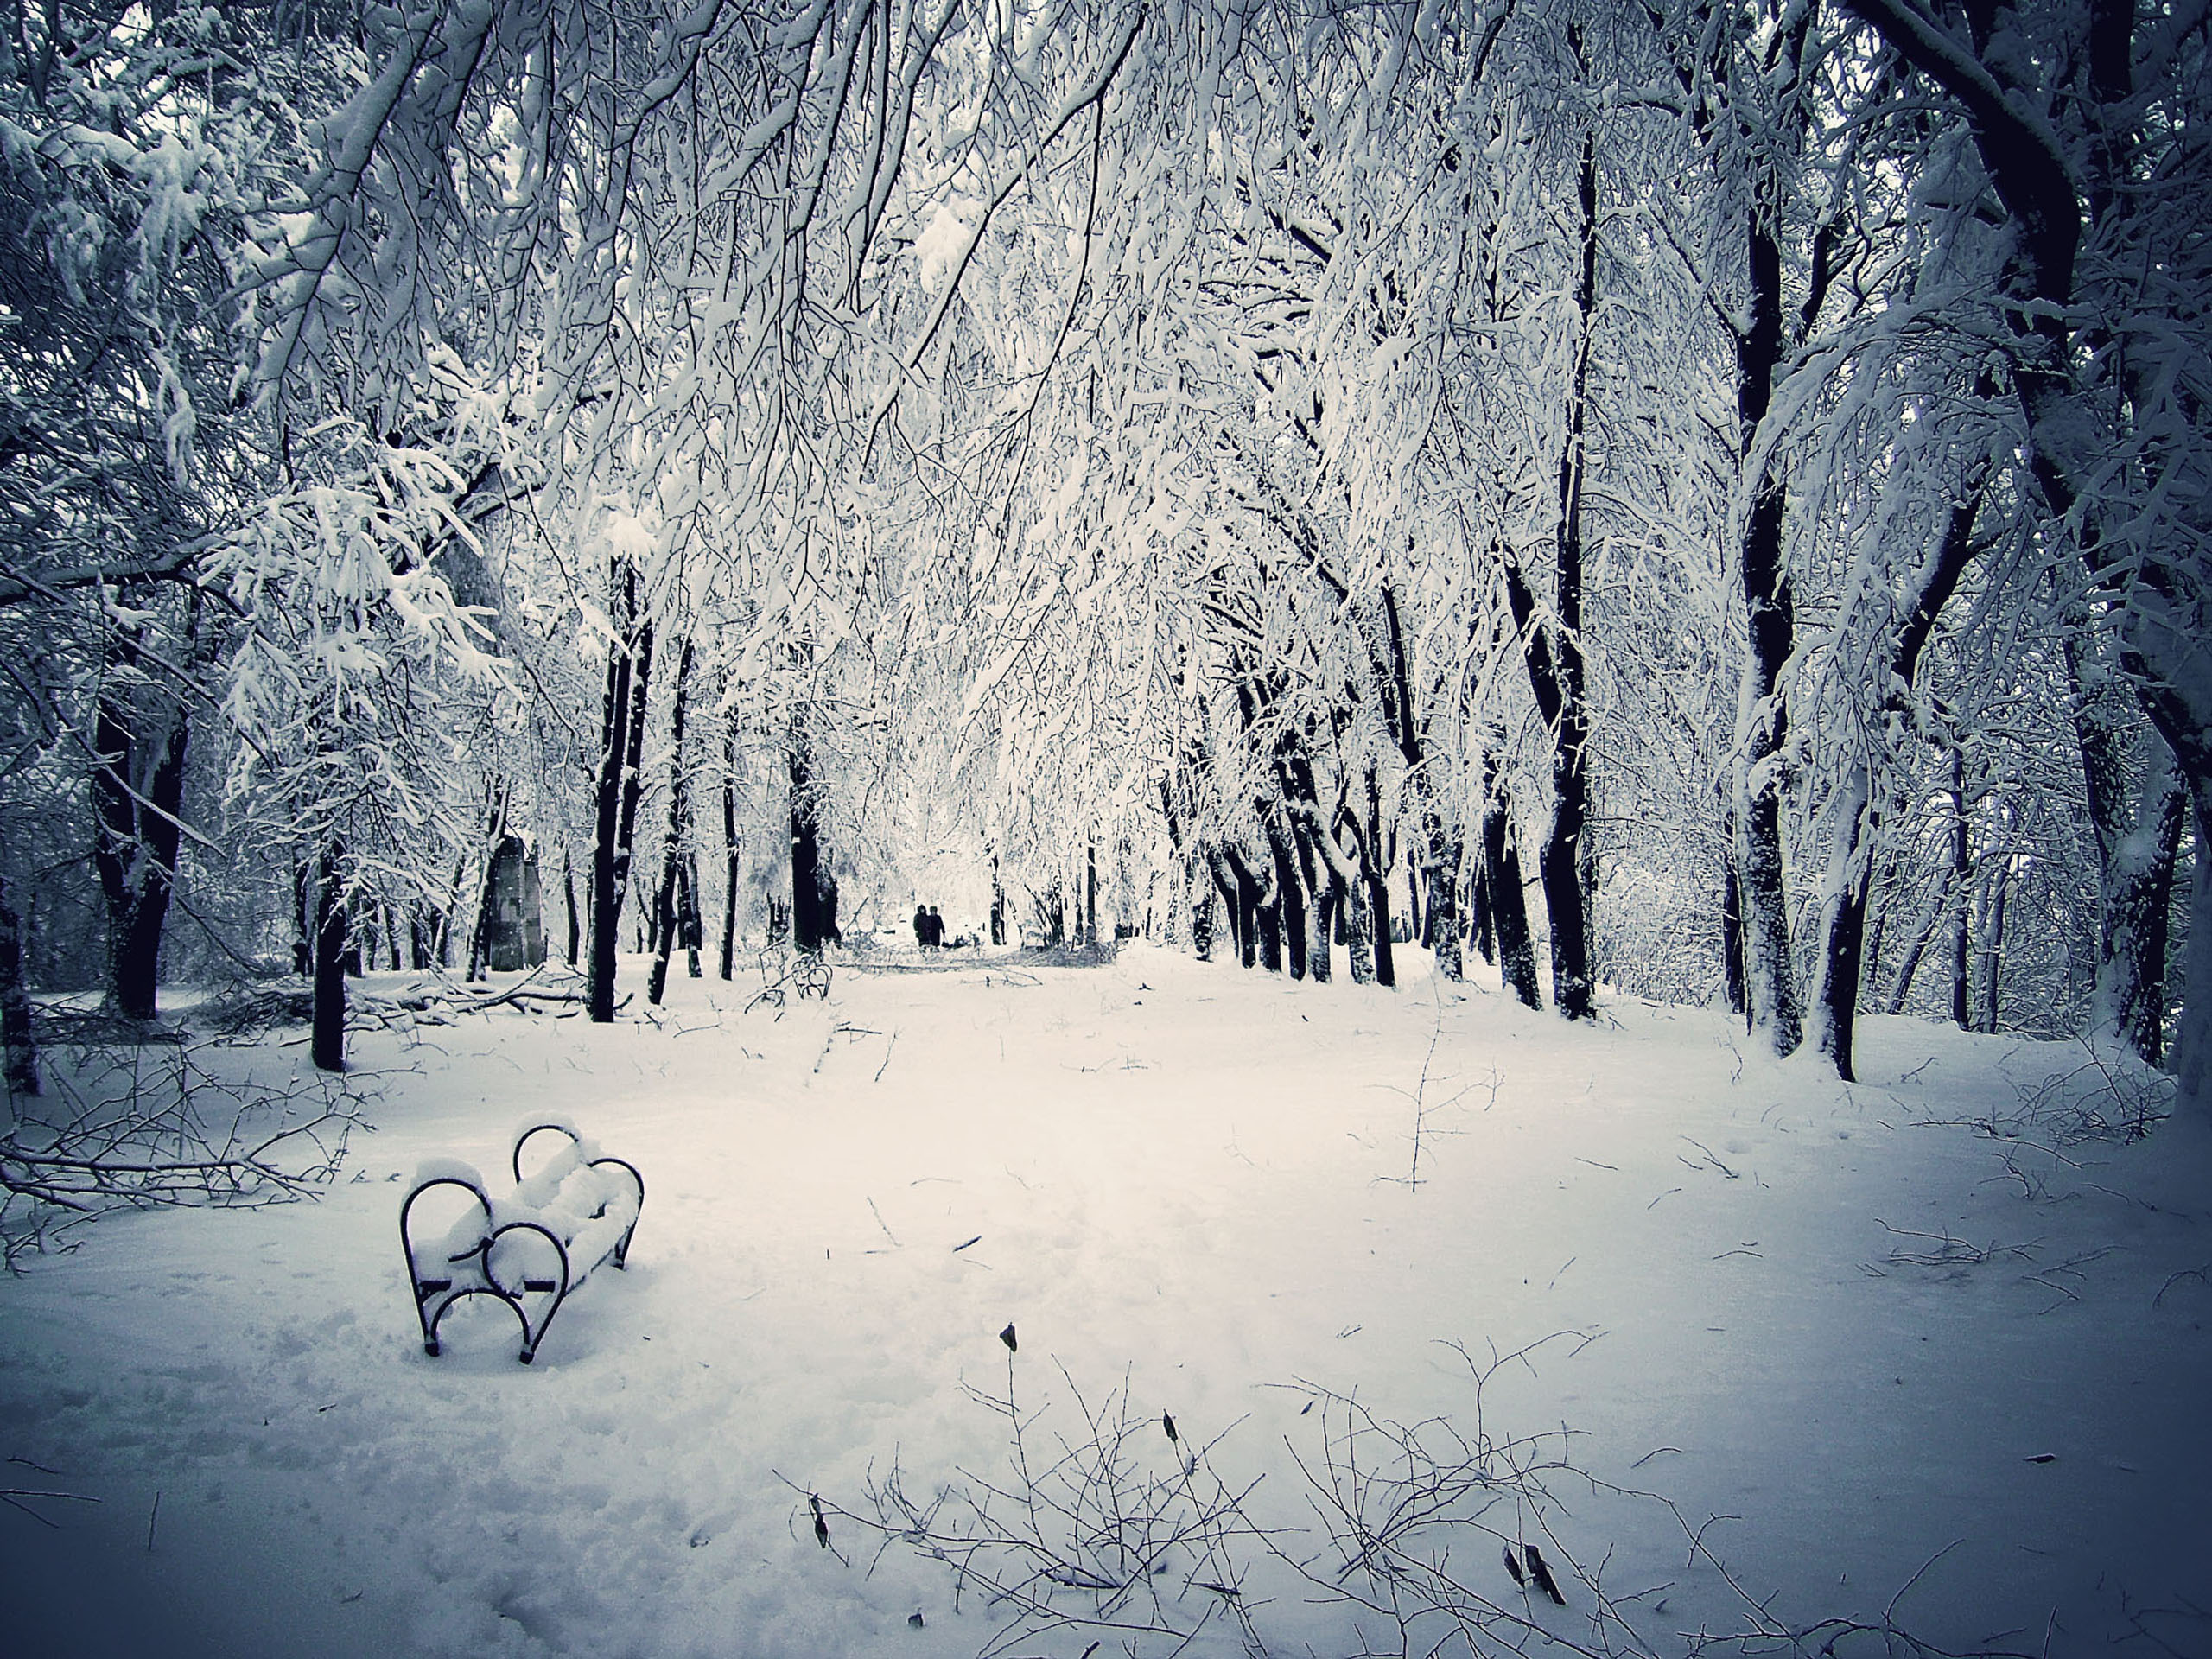 winter snow scenes wallpaper 2015   Grasscloth Wallpaper 2560x1920